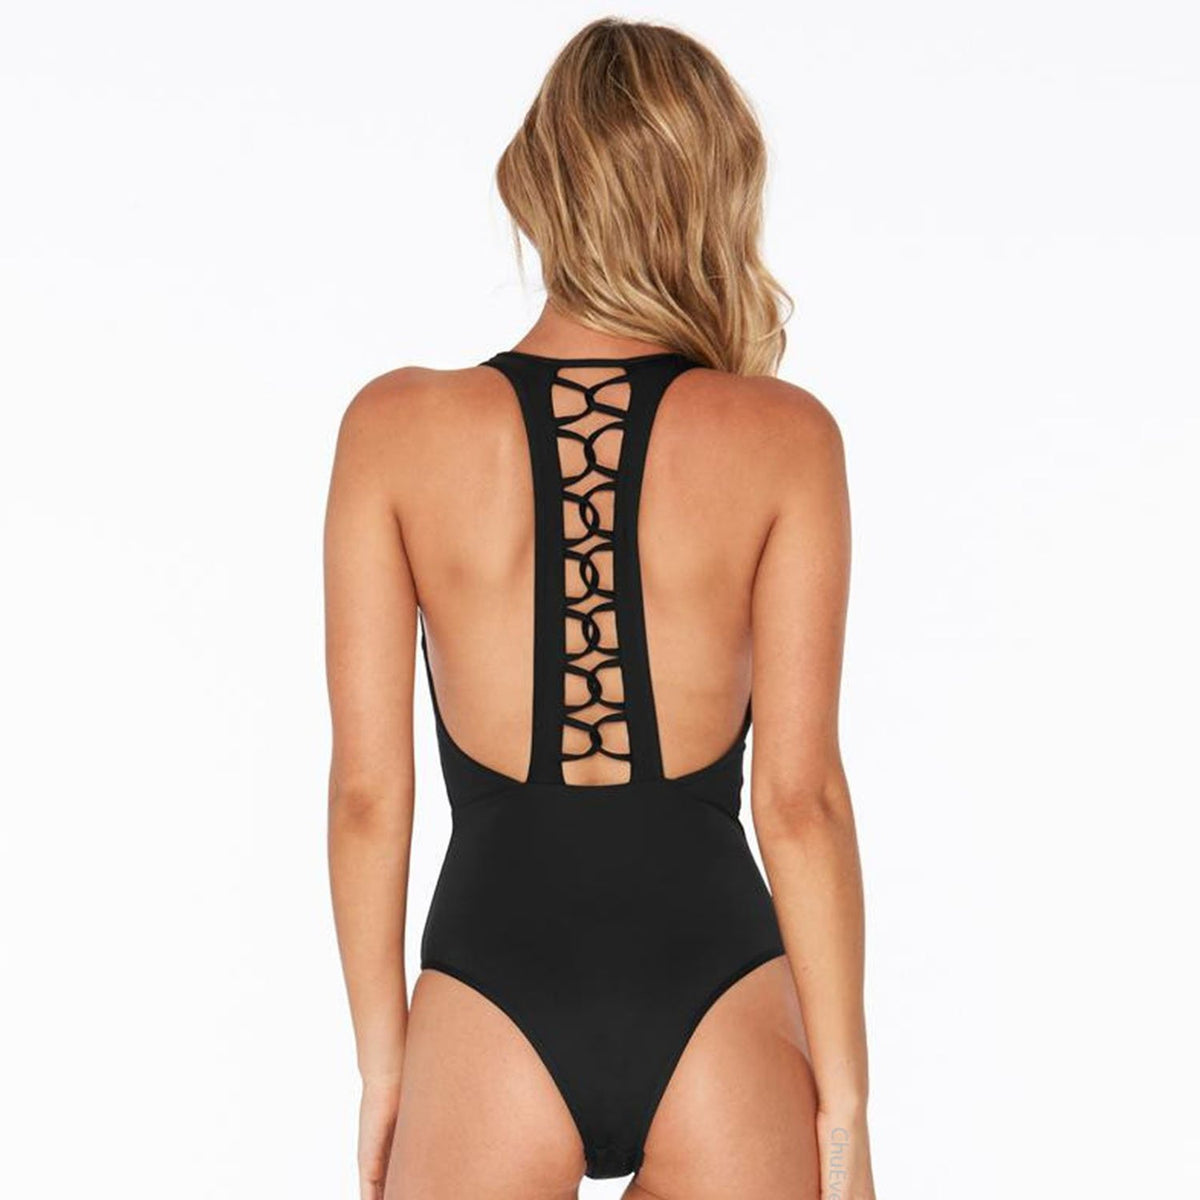 Slimming Criss Cross Racerback High Waisted One Piece Swimsuit